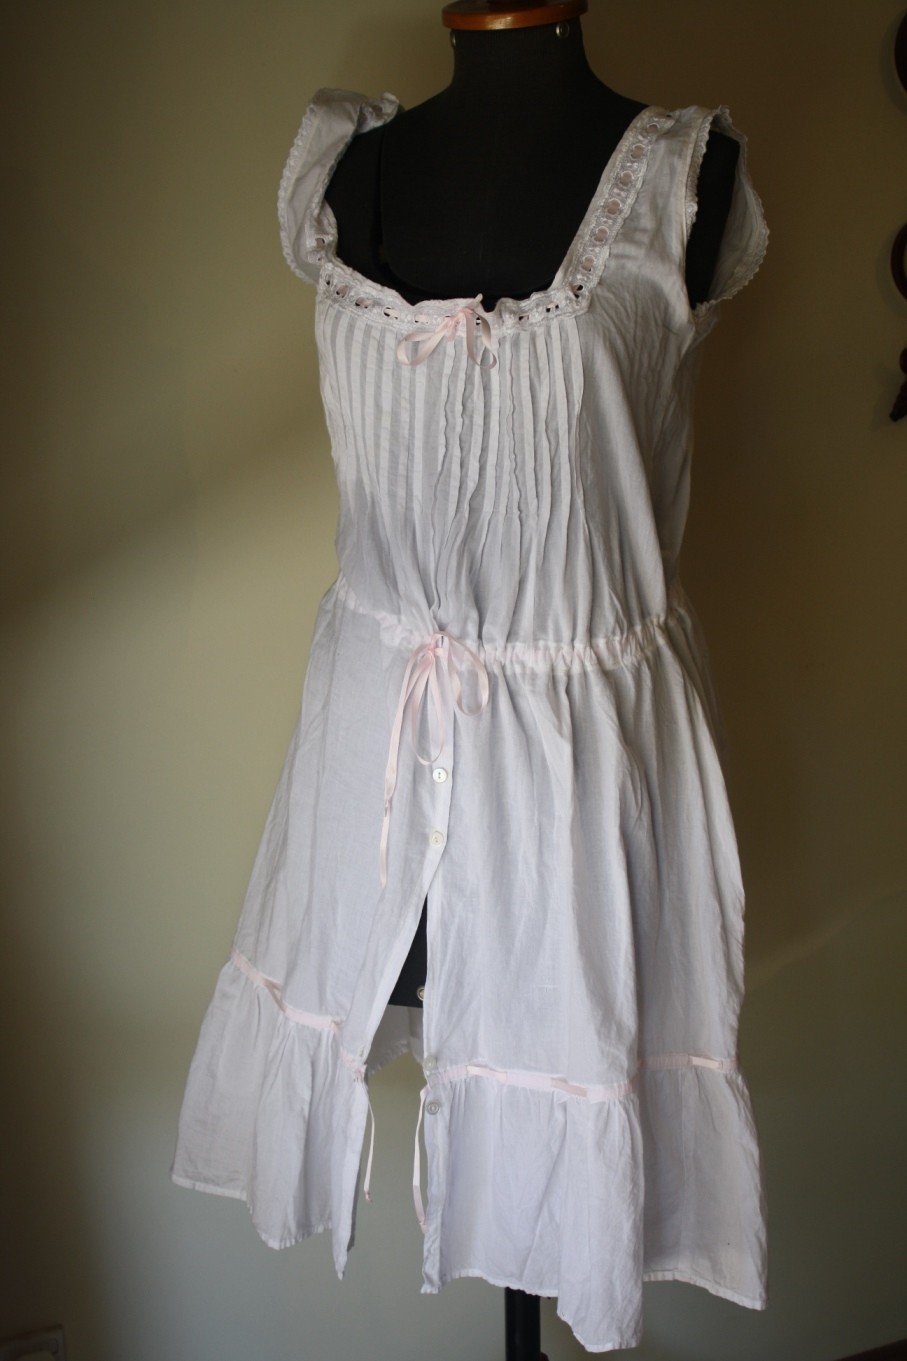 bb0dc010f1a1 So if you need some historical undergarments, keep an eye out in your local  op-shop for a granny nightie!